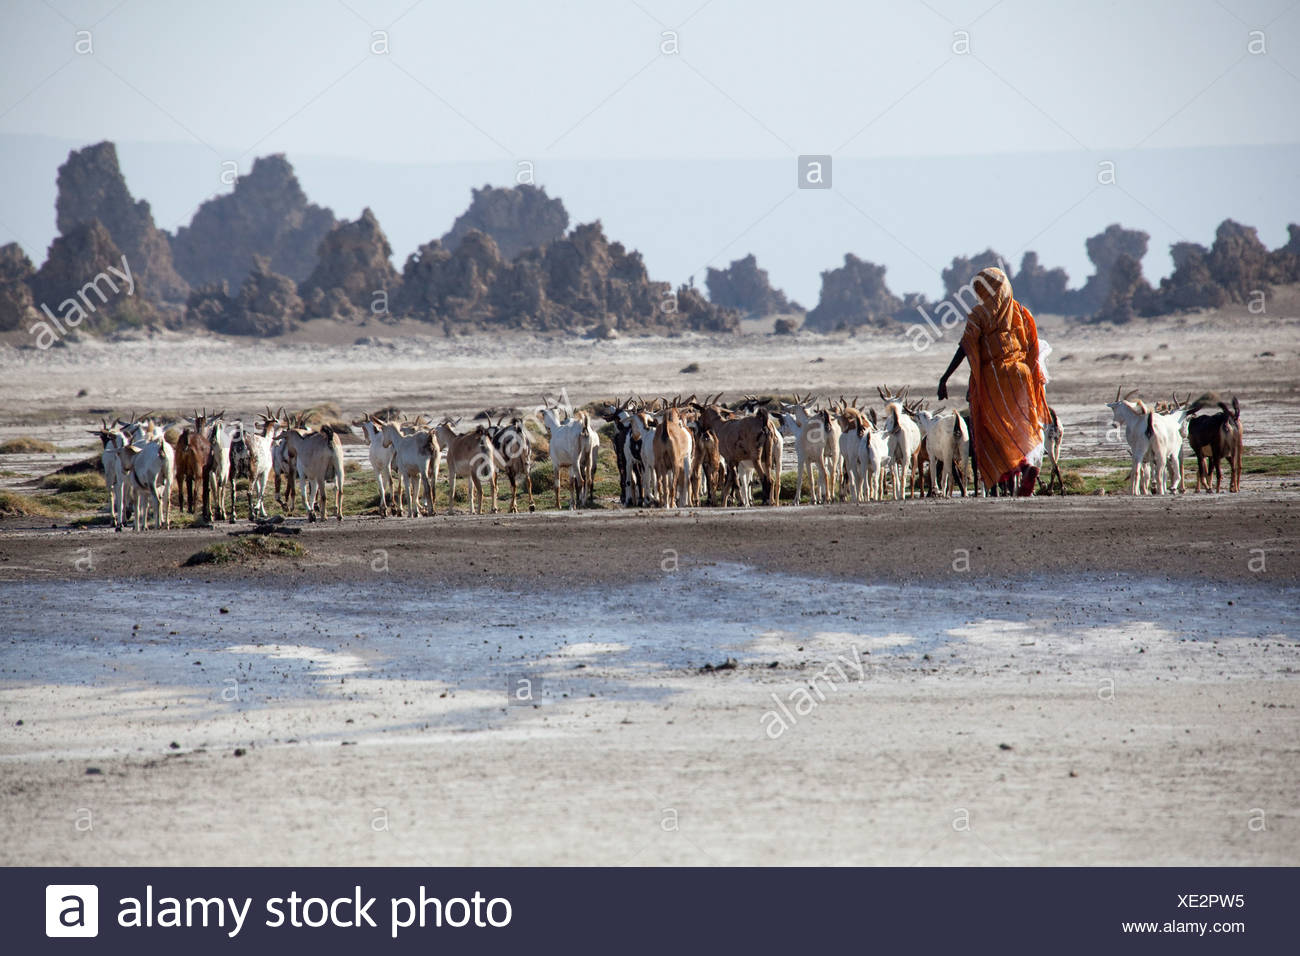 herd of goats, goats, nanny goats, Abbesee, Djibouti, Africa, scenery, landscape, nature, lake, lakes, agriculture, shepherd - Stock Image